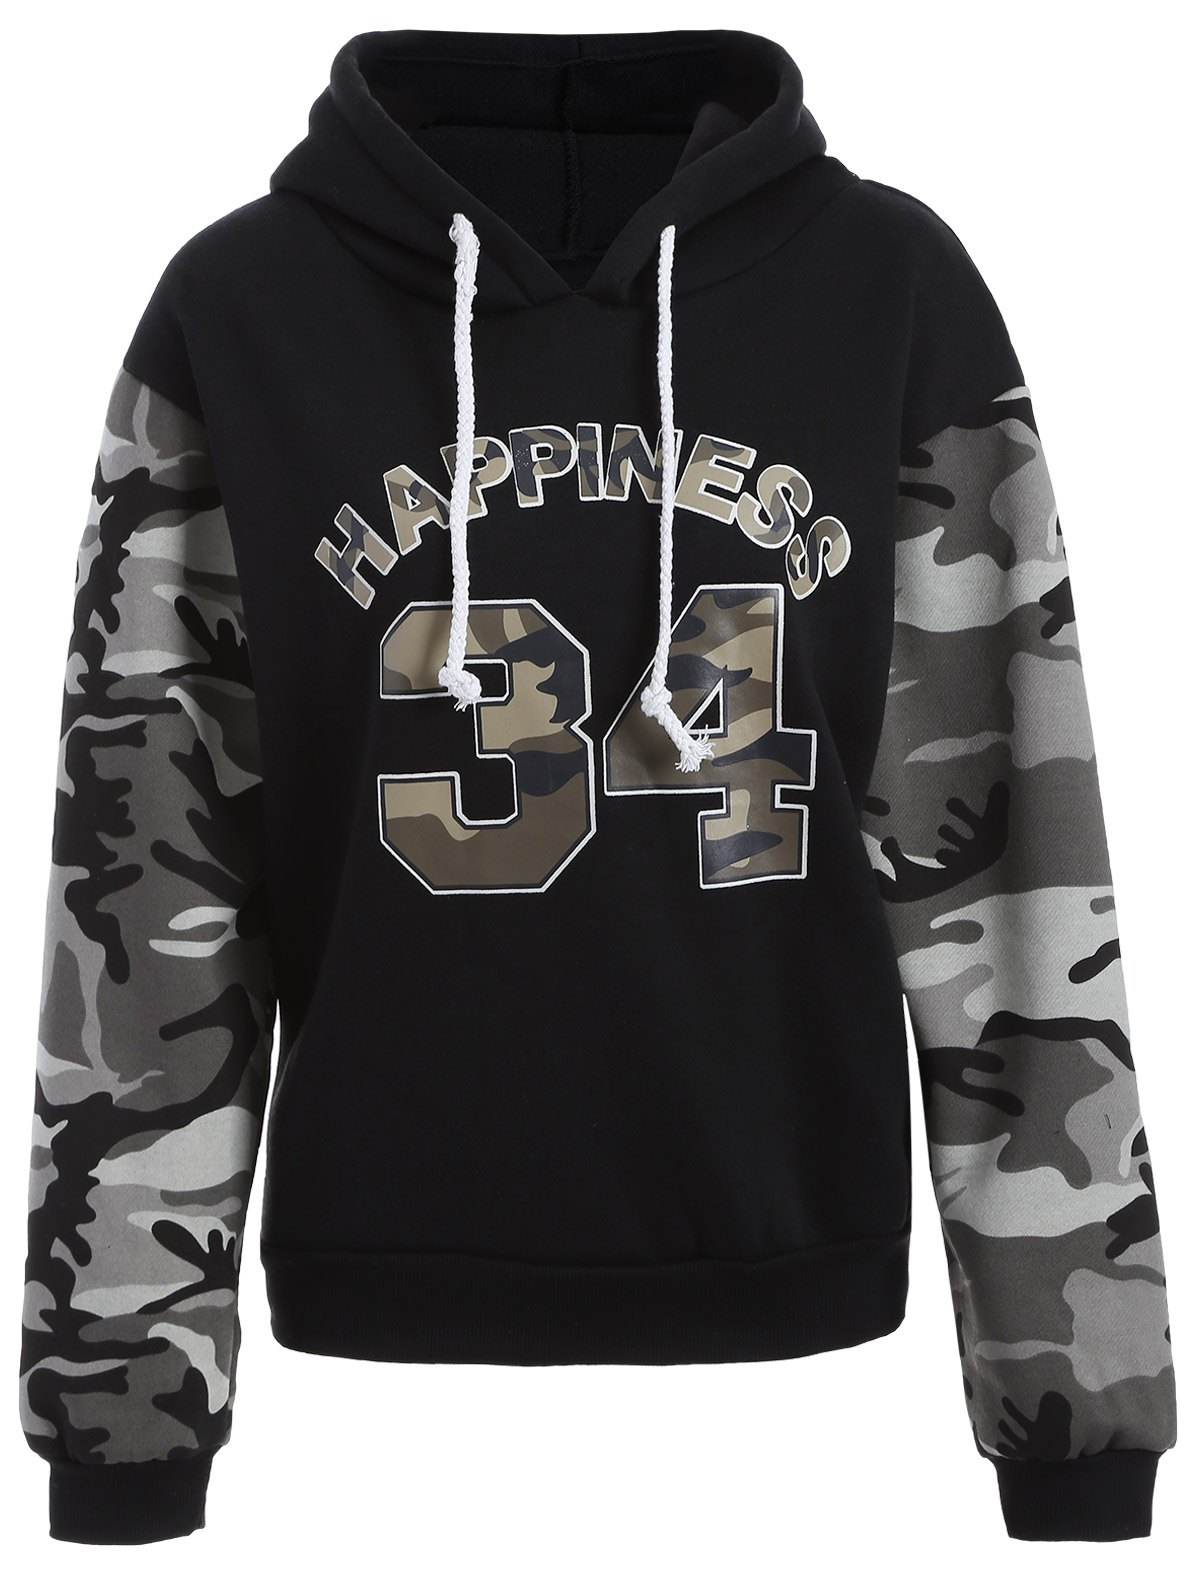 Shop Letter Graphic Camo Hoodie